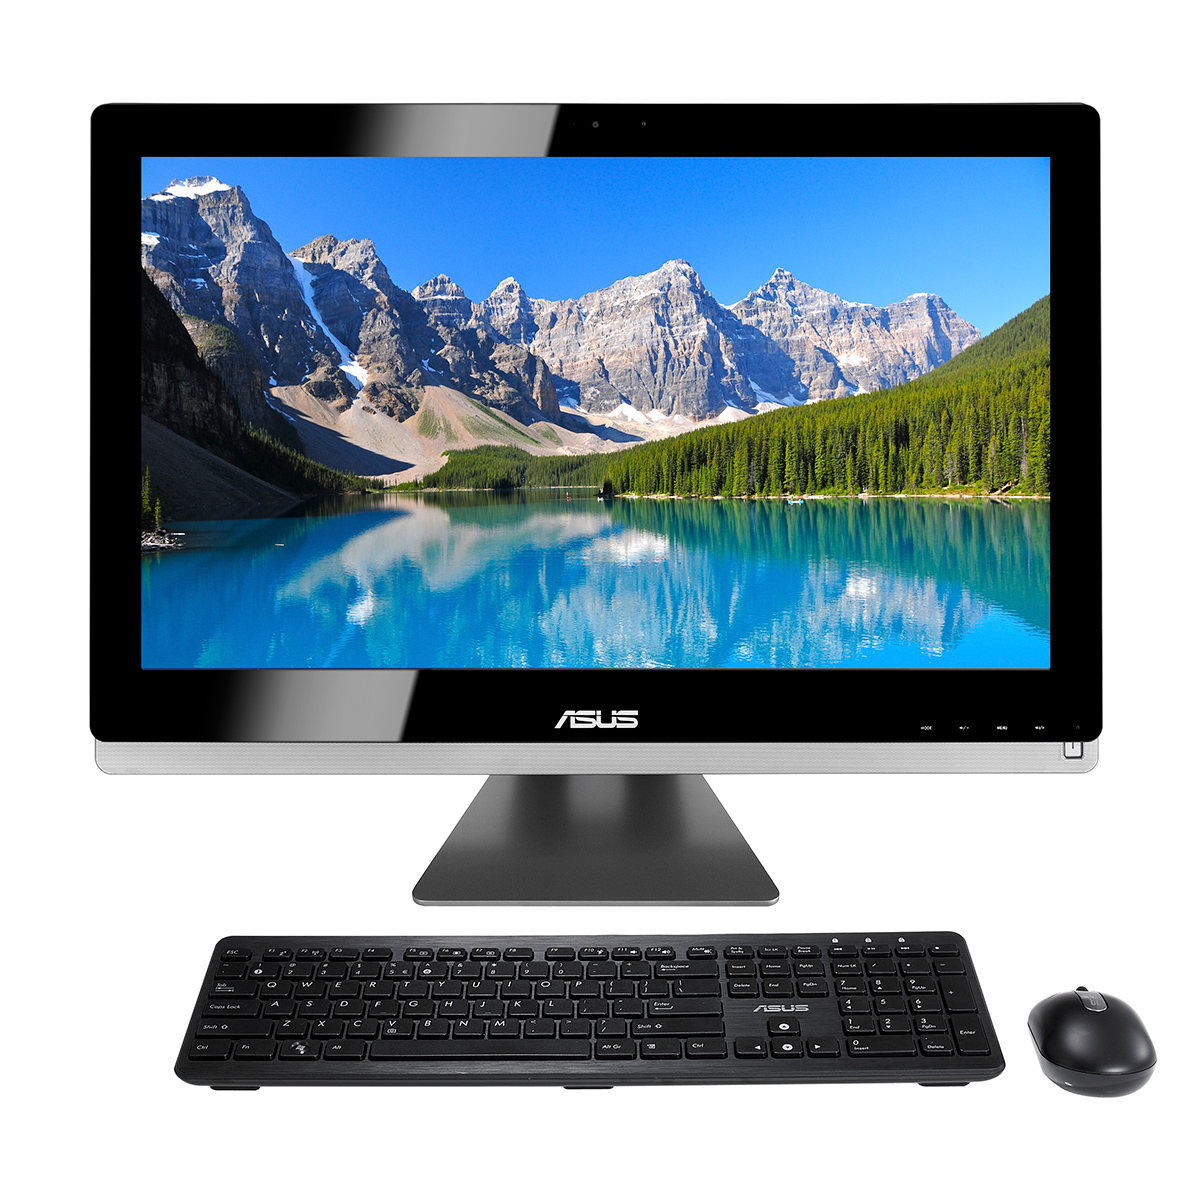 asus all in one pc et2702igth bh002k pc de bureau asus sur ldlc. Black Bedroom Furniture Sets. Home Design Ideas